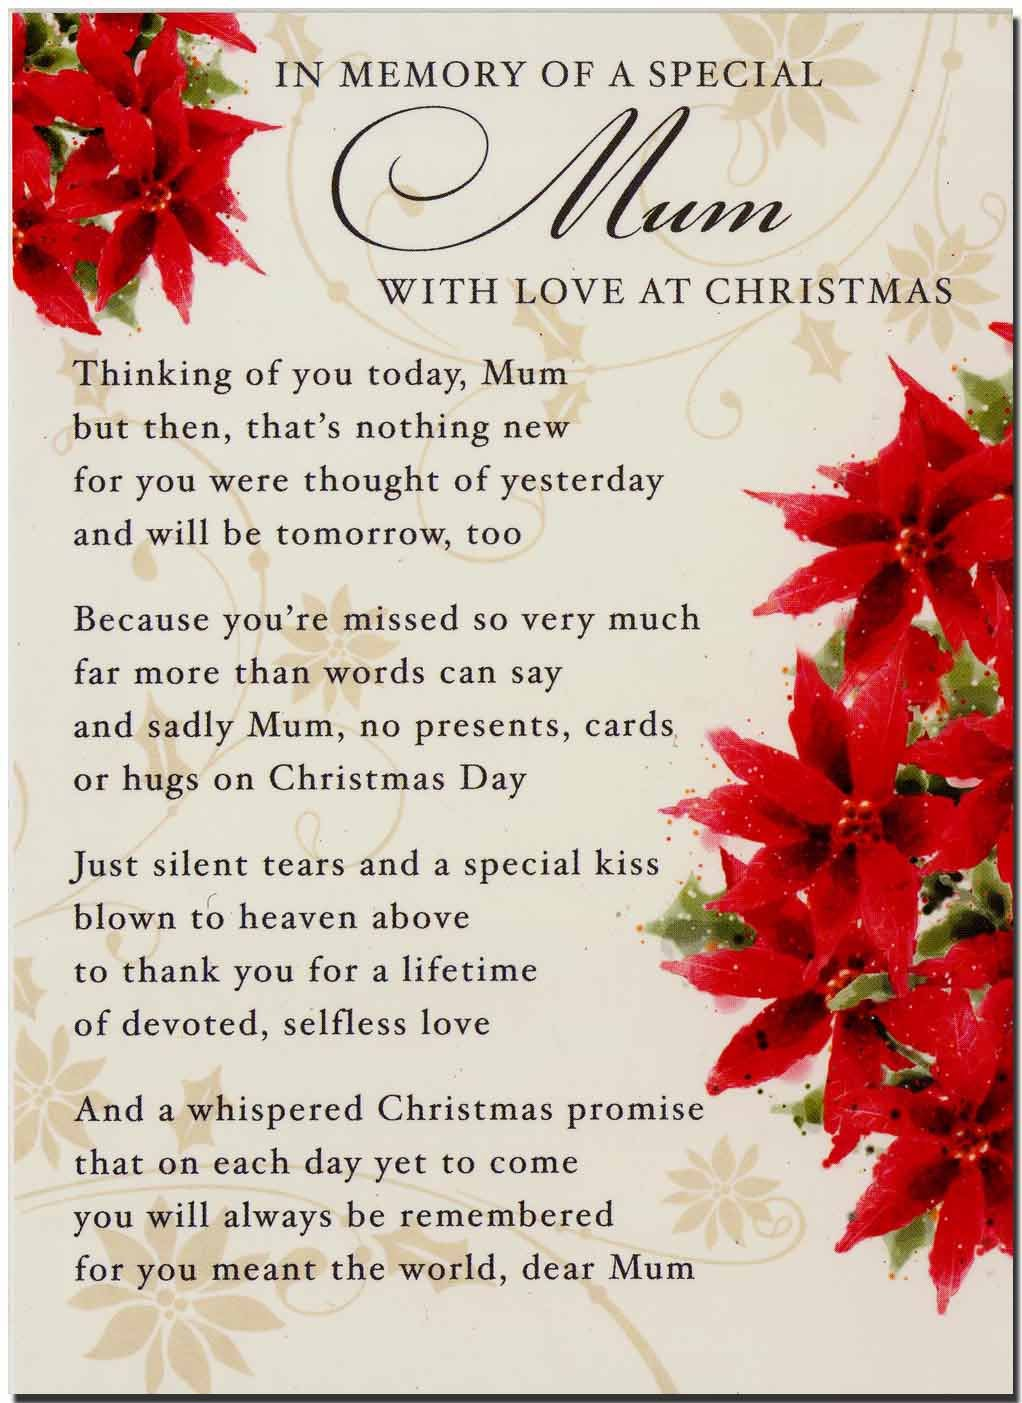 Grave Card - In Memory Of A Special Mum, With Love at Christmas ...